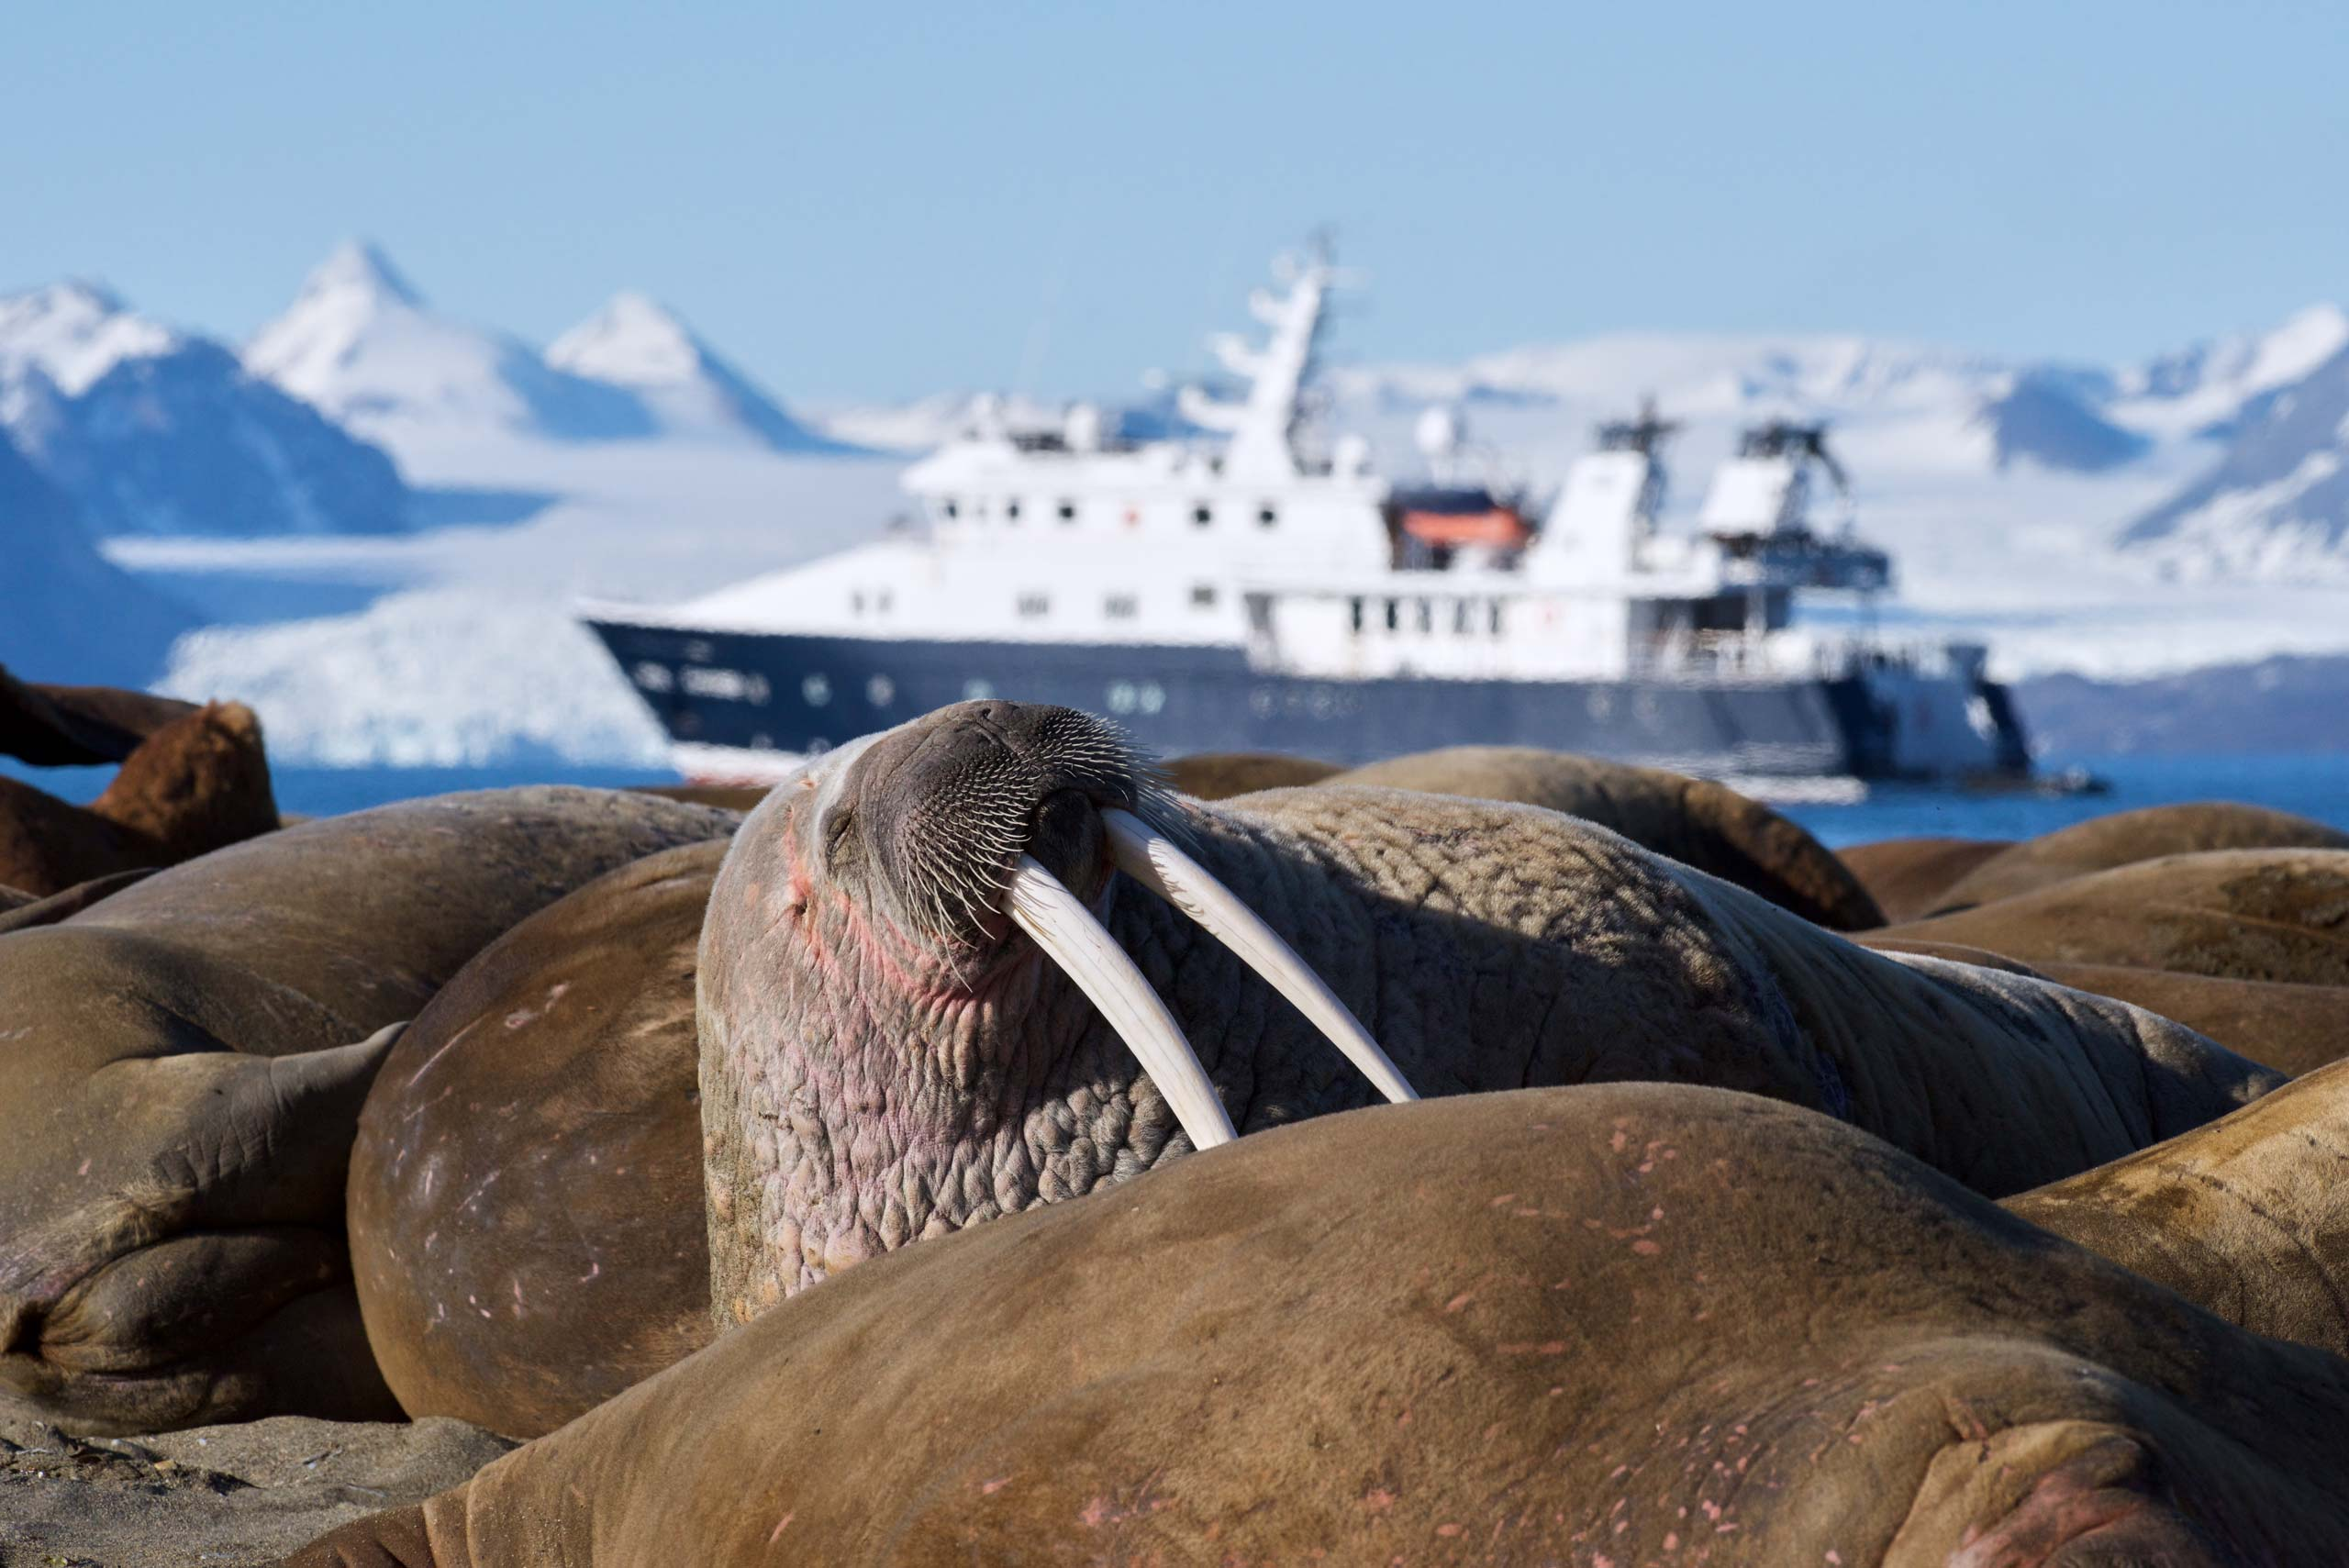 Walrus and Hanse Explorer in the Arctic